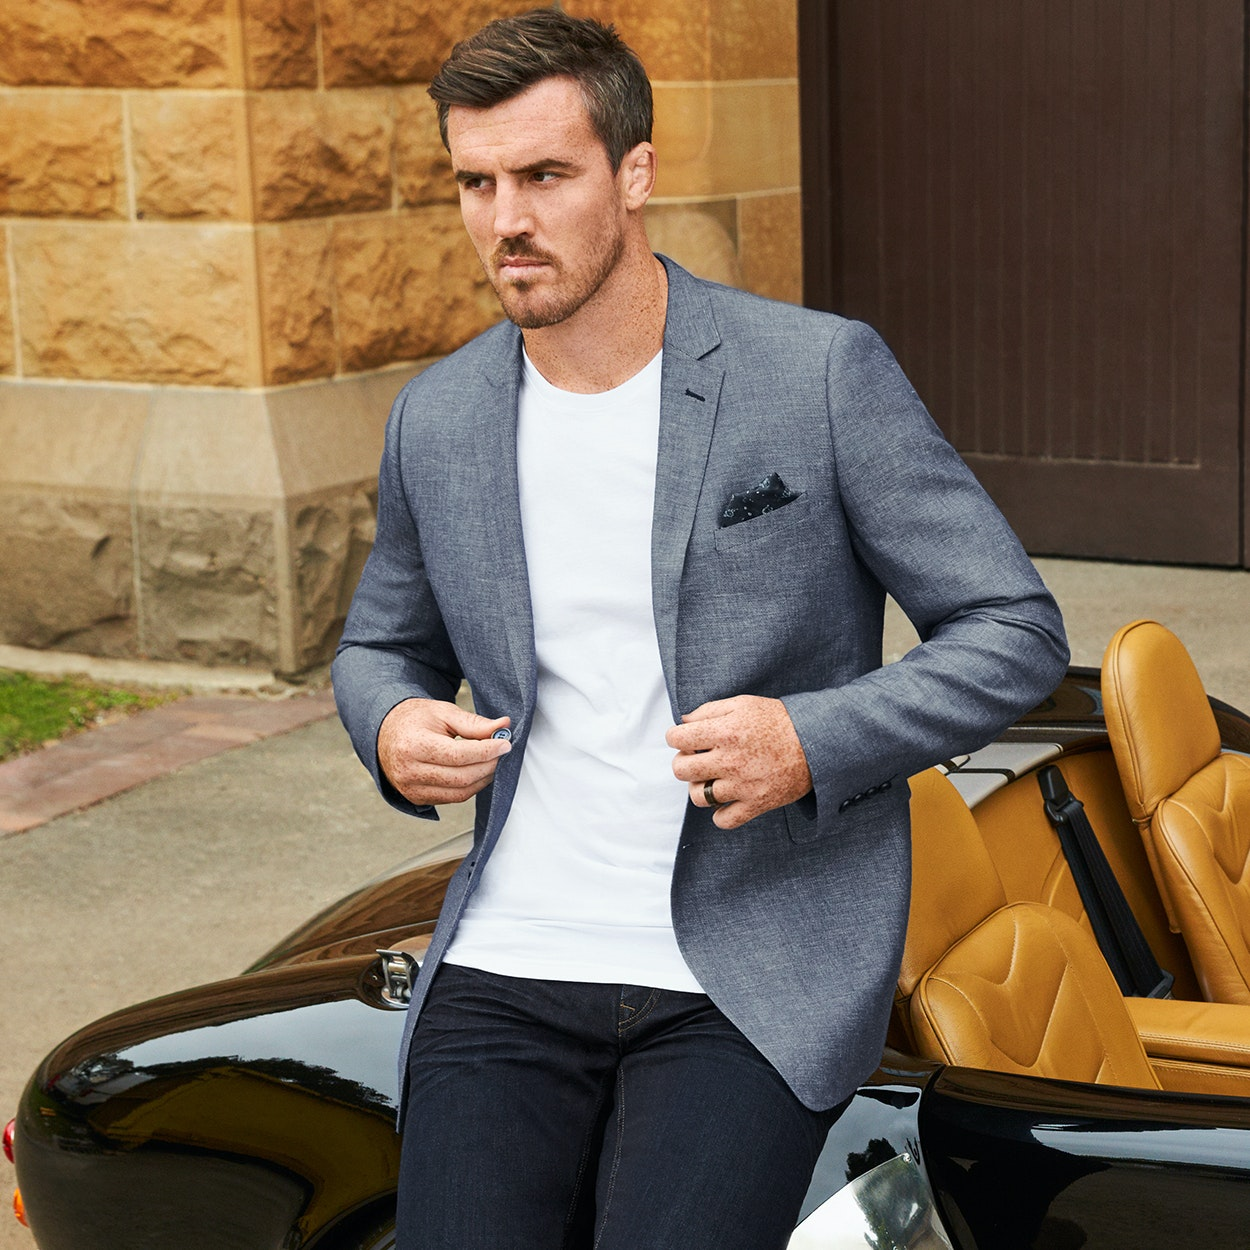 Shop our latest season Mens suits, shirts, denim, chinos & shoes